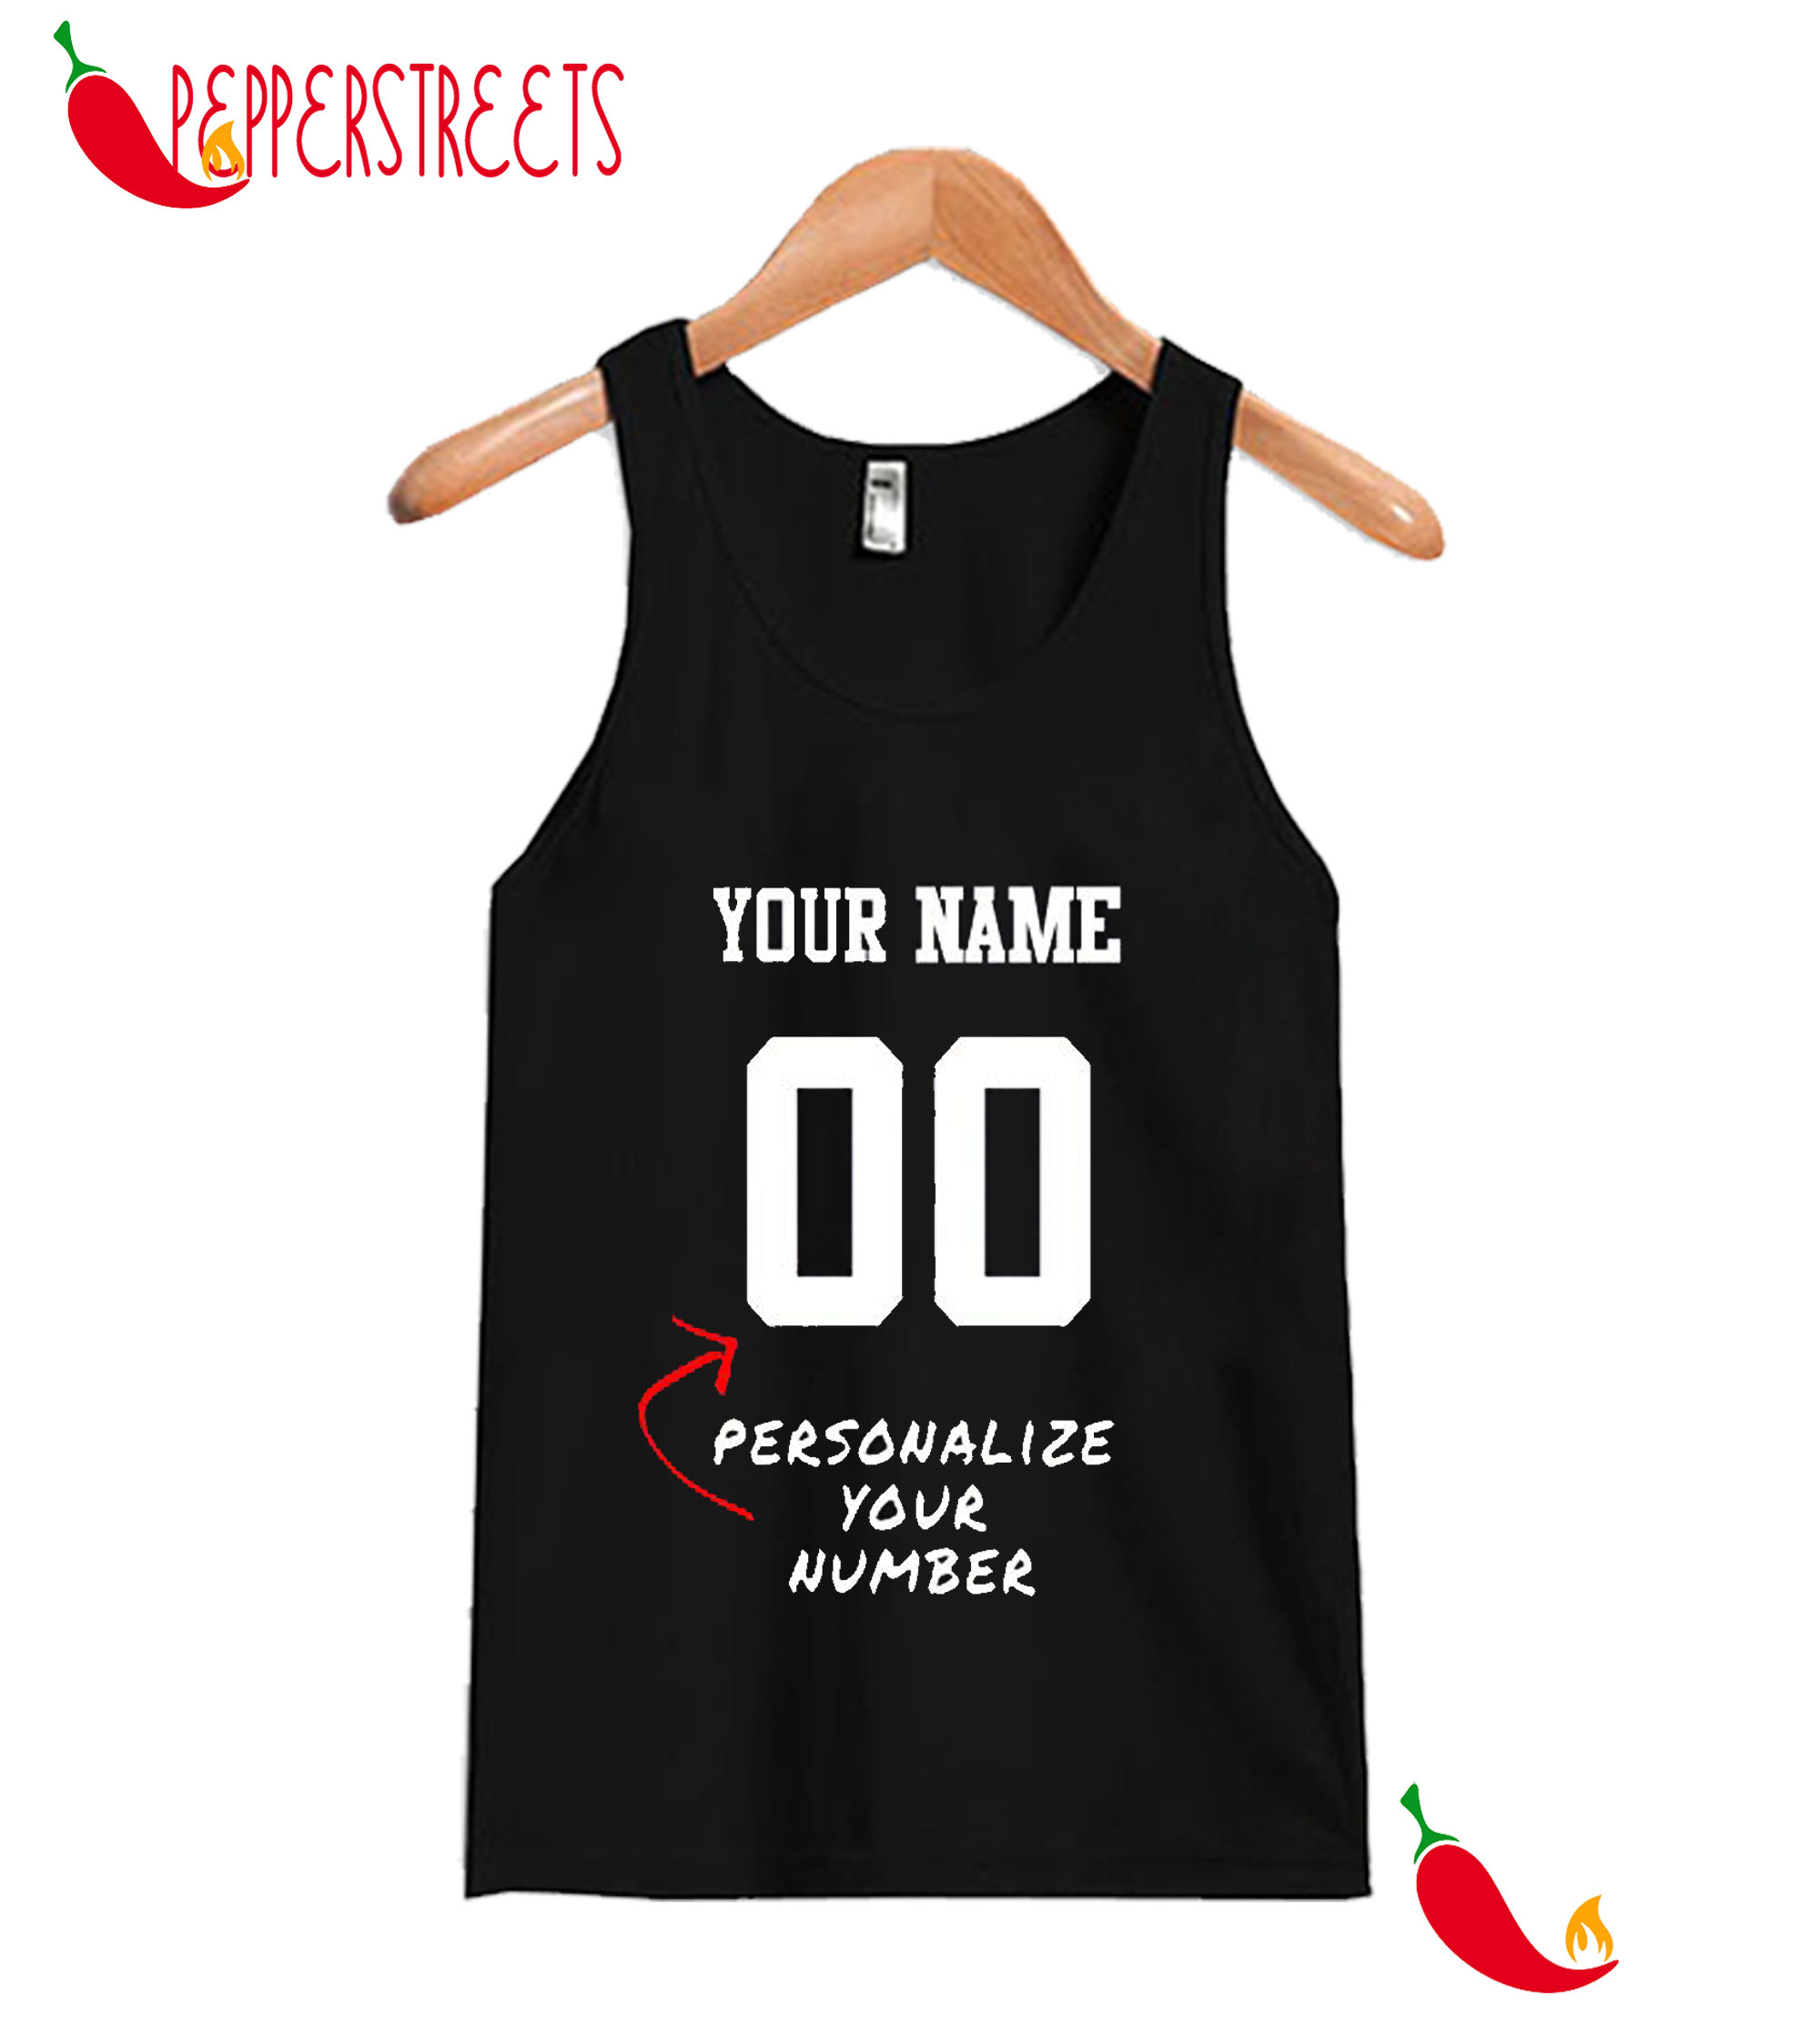 Your Name 00 Personalize Your Number Tank Top